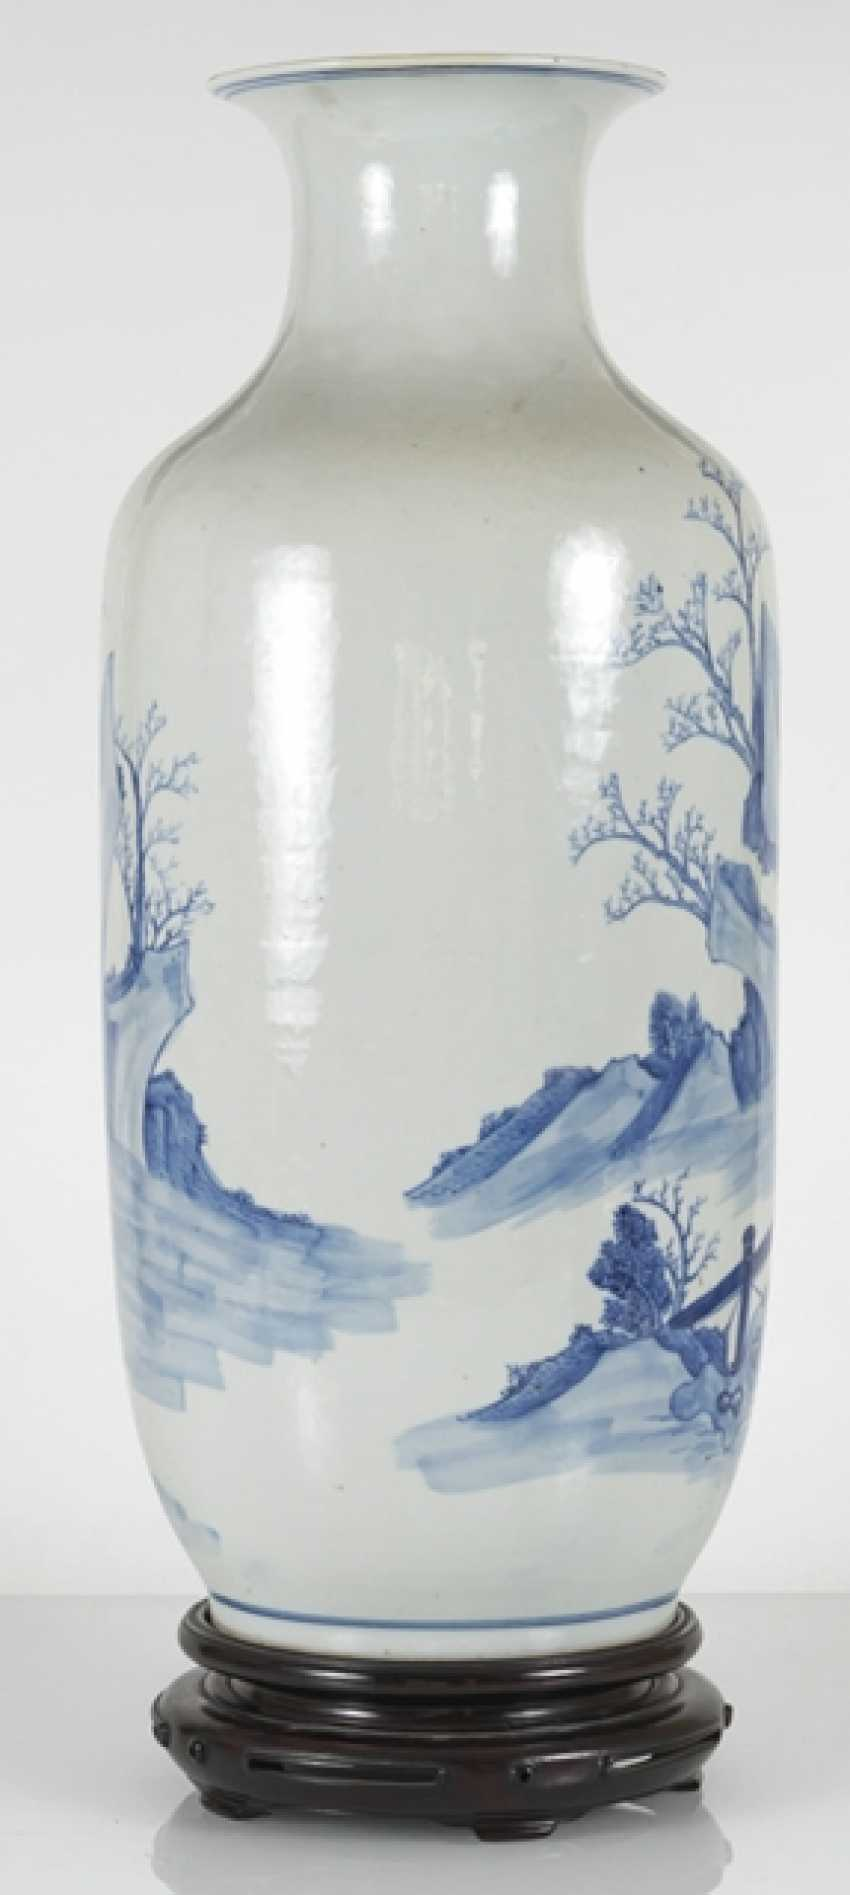 Under glaze blue decorated floor vase made of porcelain with a depiction of Su Shi and Qin Guan - photo 4